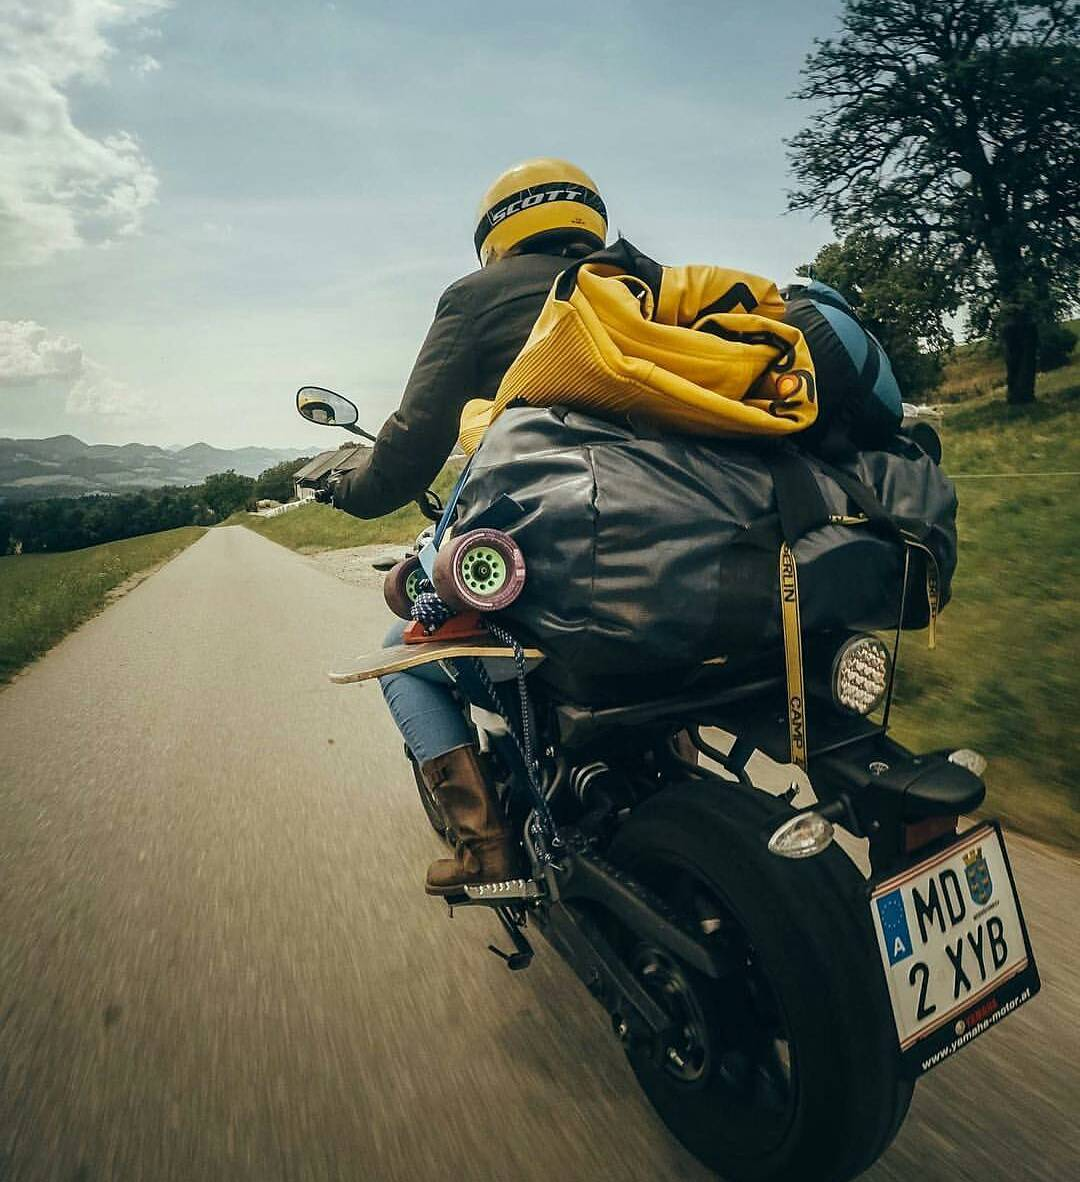 #OrangatangAmbassador @glorifiziert doesn't rely on snail mail to get her gear to the next event! Thanks to motorcycles she can still practice race lines while her wet leathers and setup can dry out after a rainy race at Almatrieb!  Photo: Shaaf...